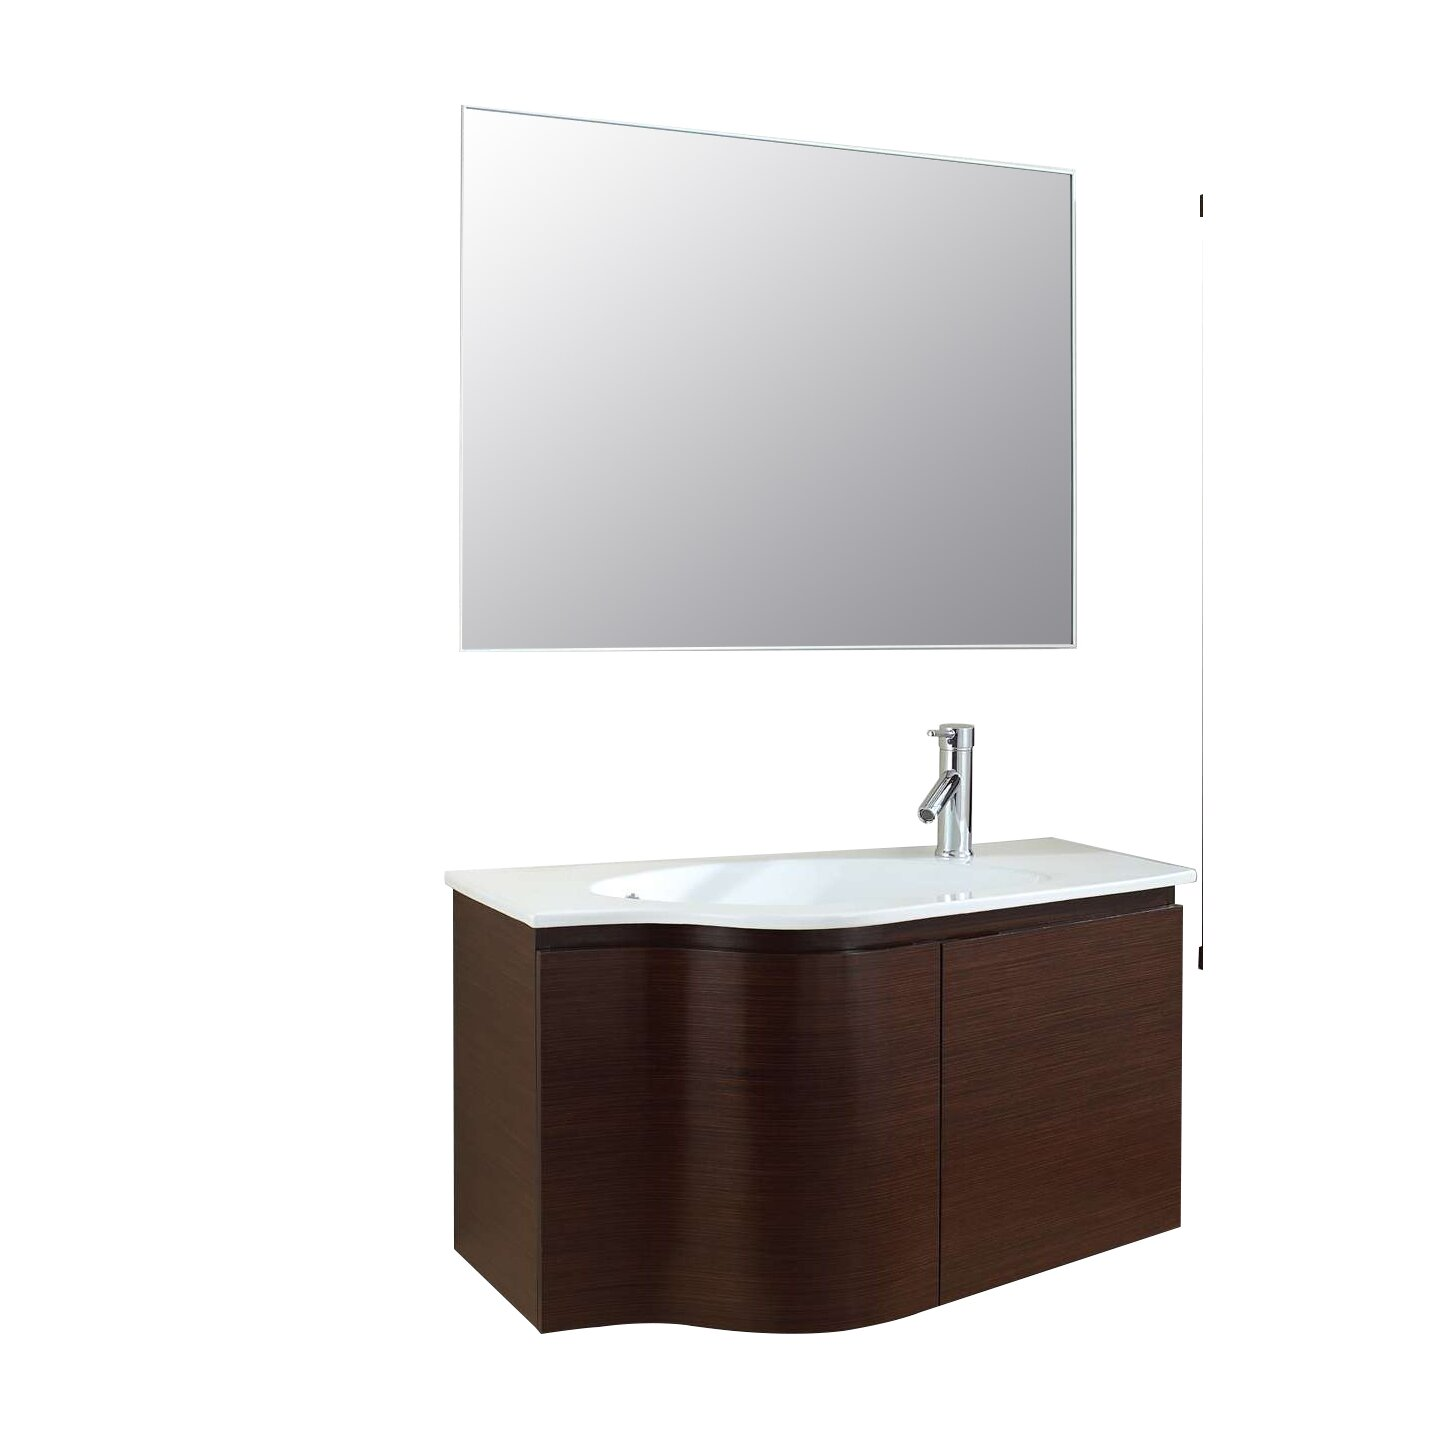 Virtu roselle 35 quot single floating bathroom vanity set with mirror